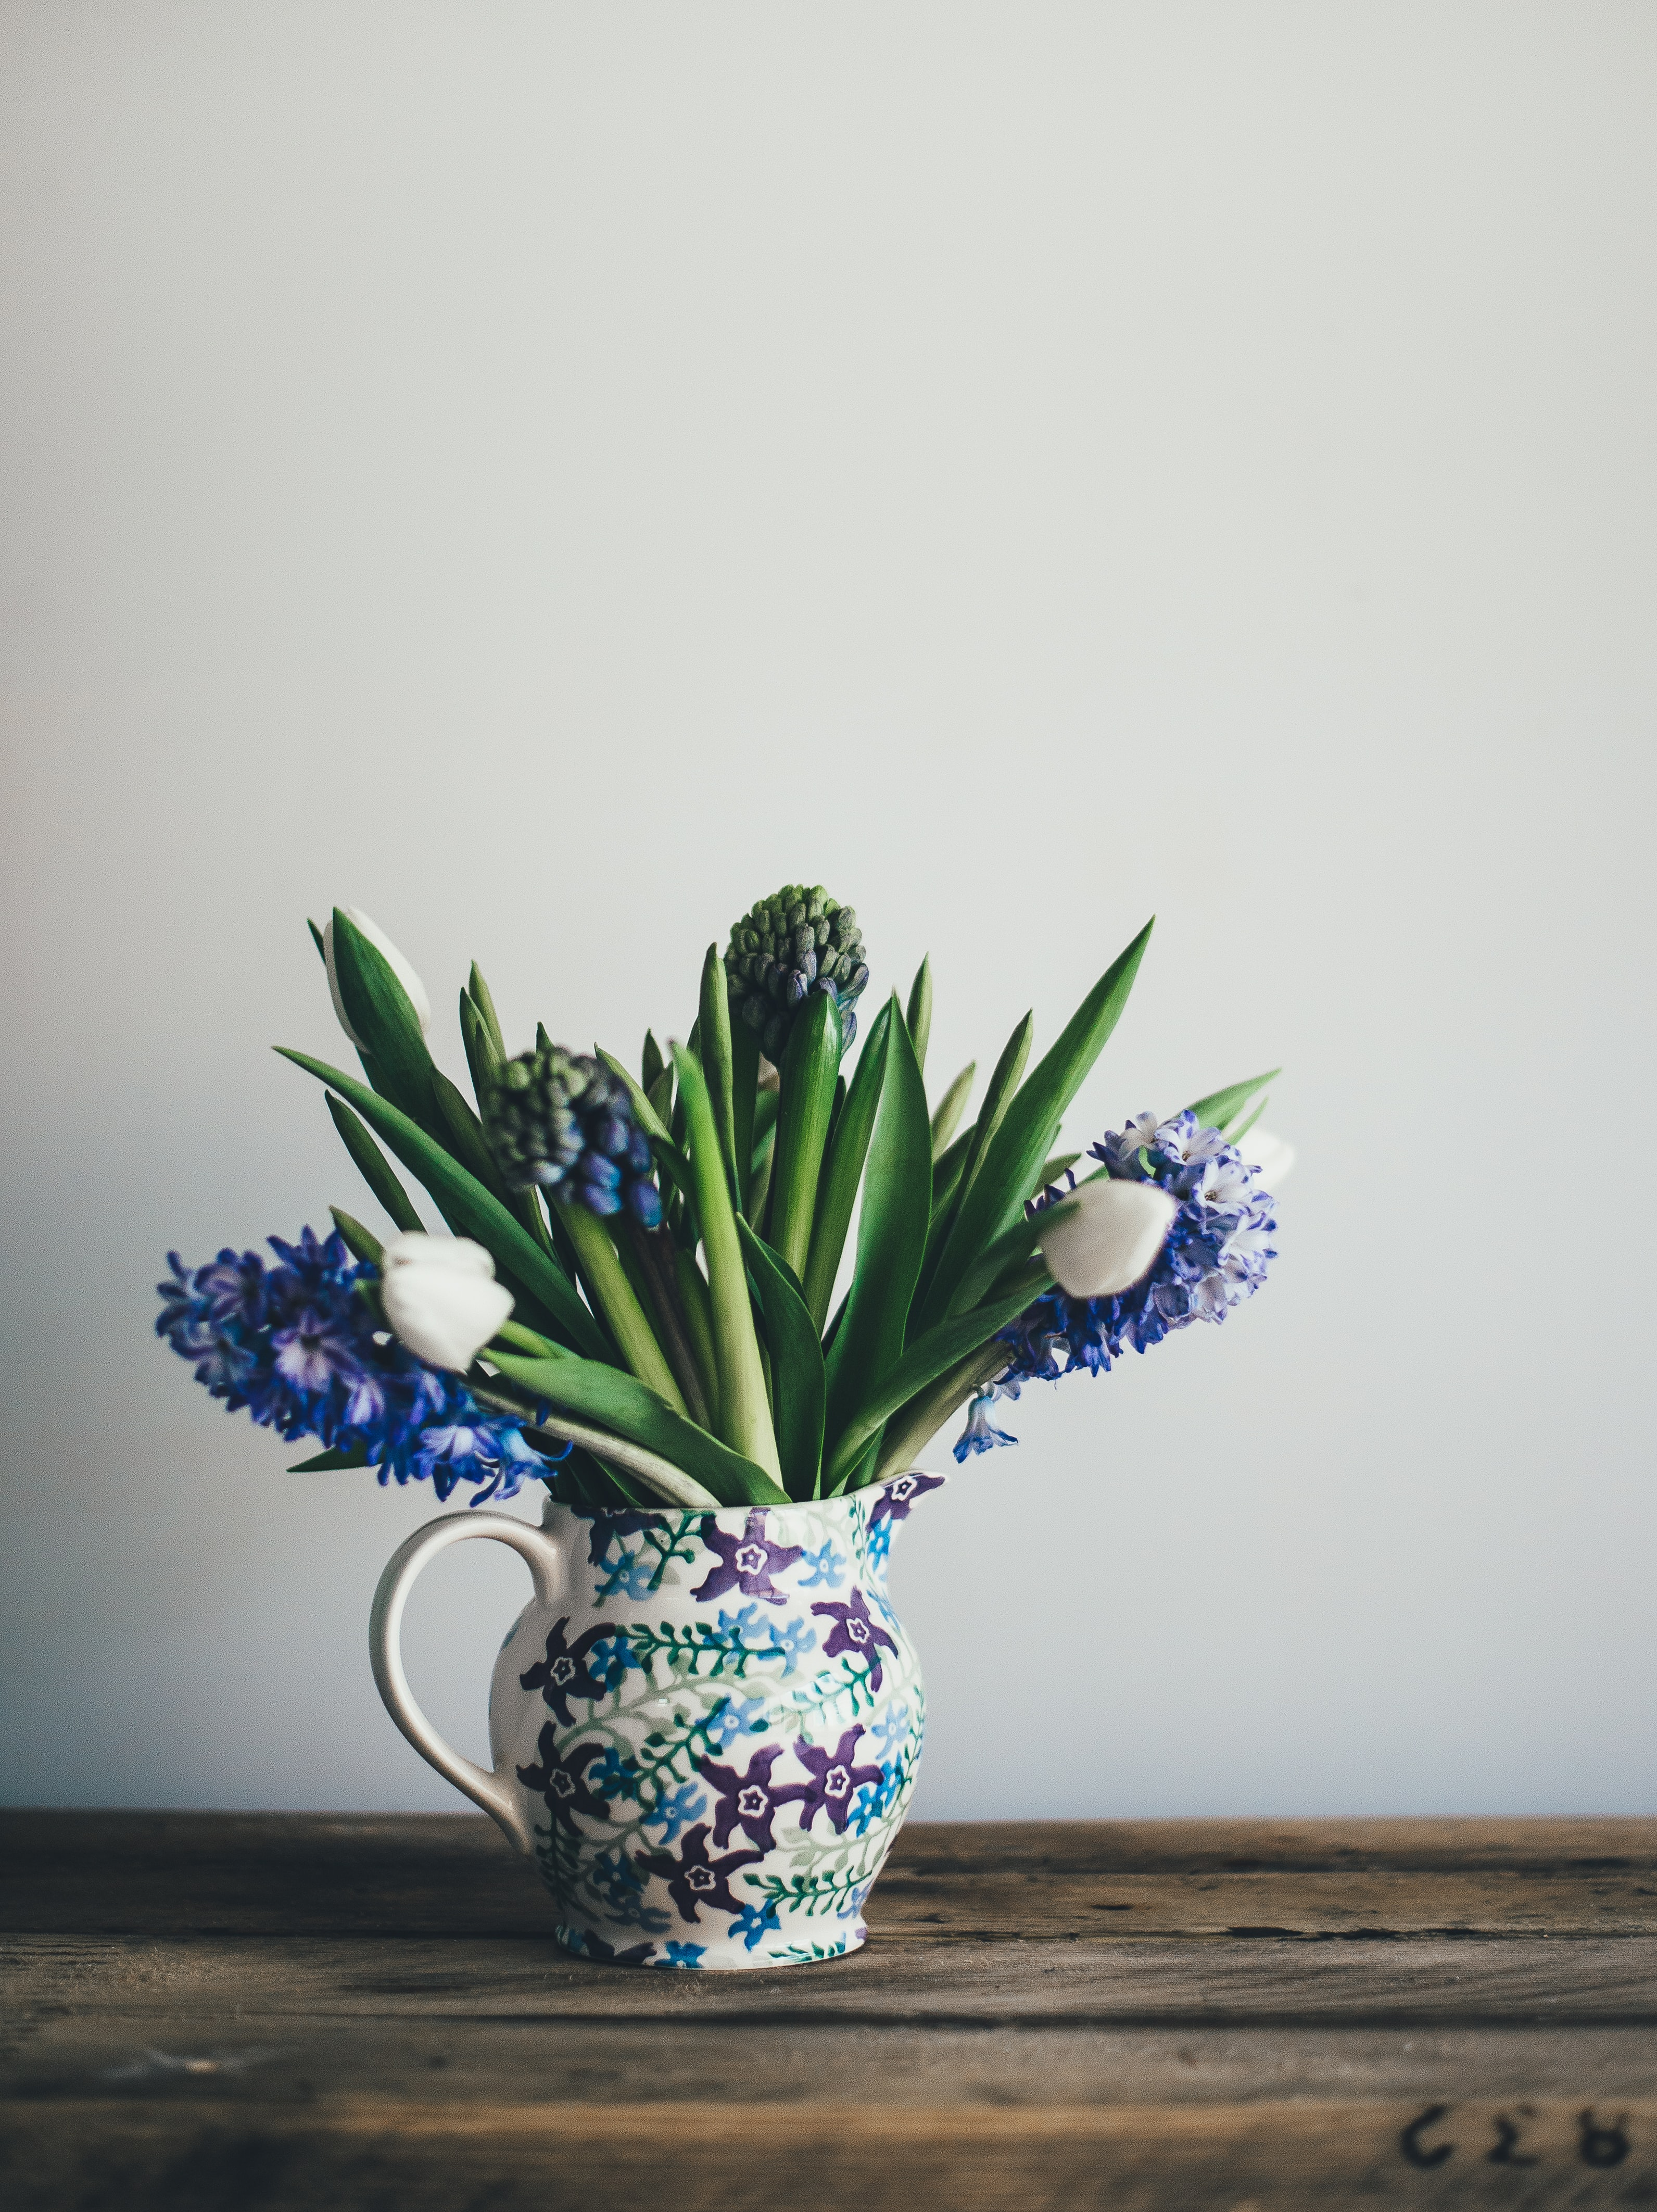 A floral vase with blue hyacinths and white tulips